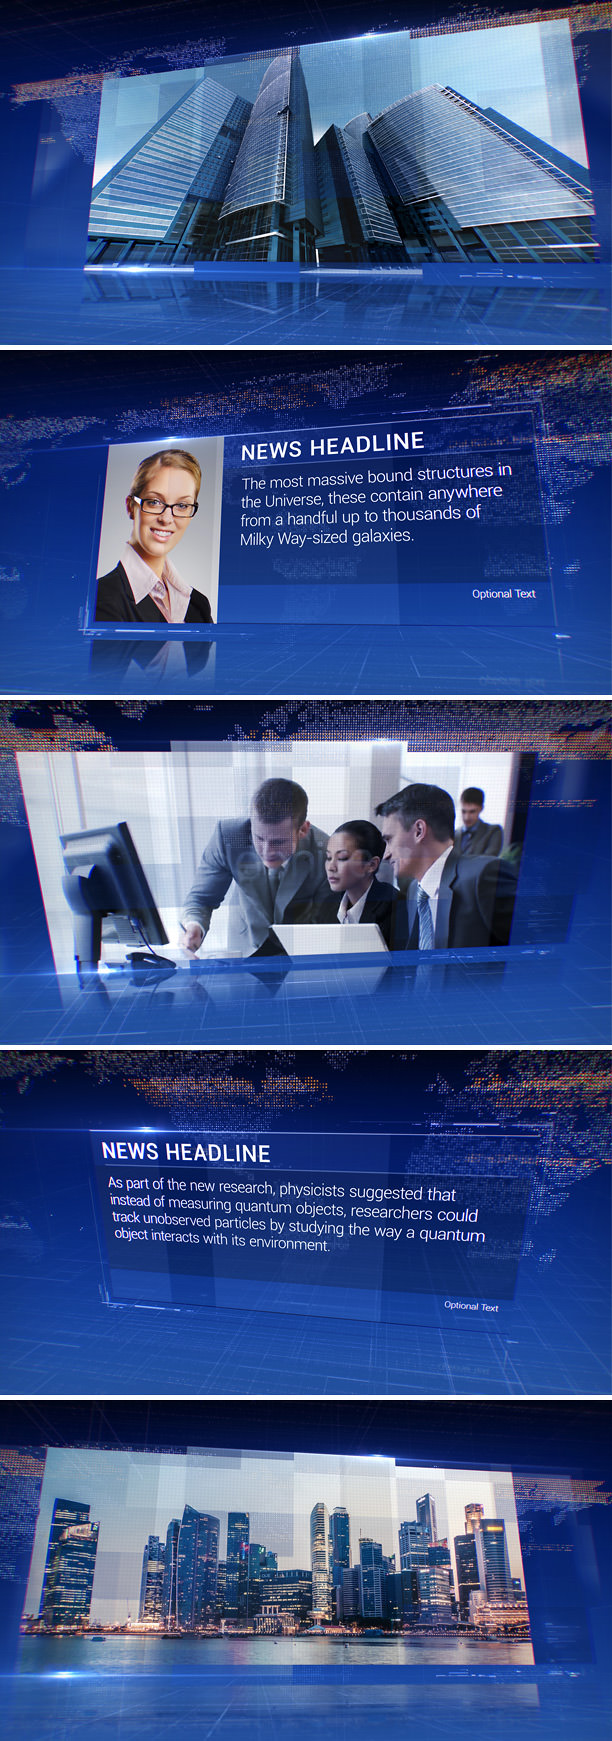 Modern News After Effects Template for TV channel design